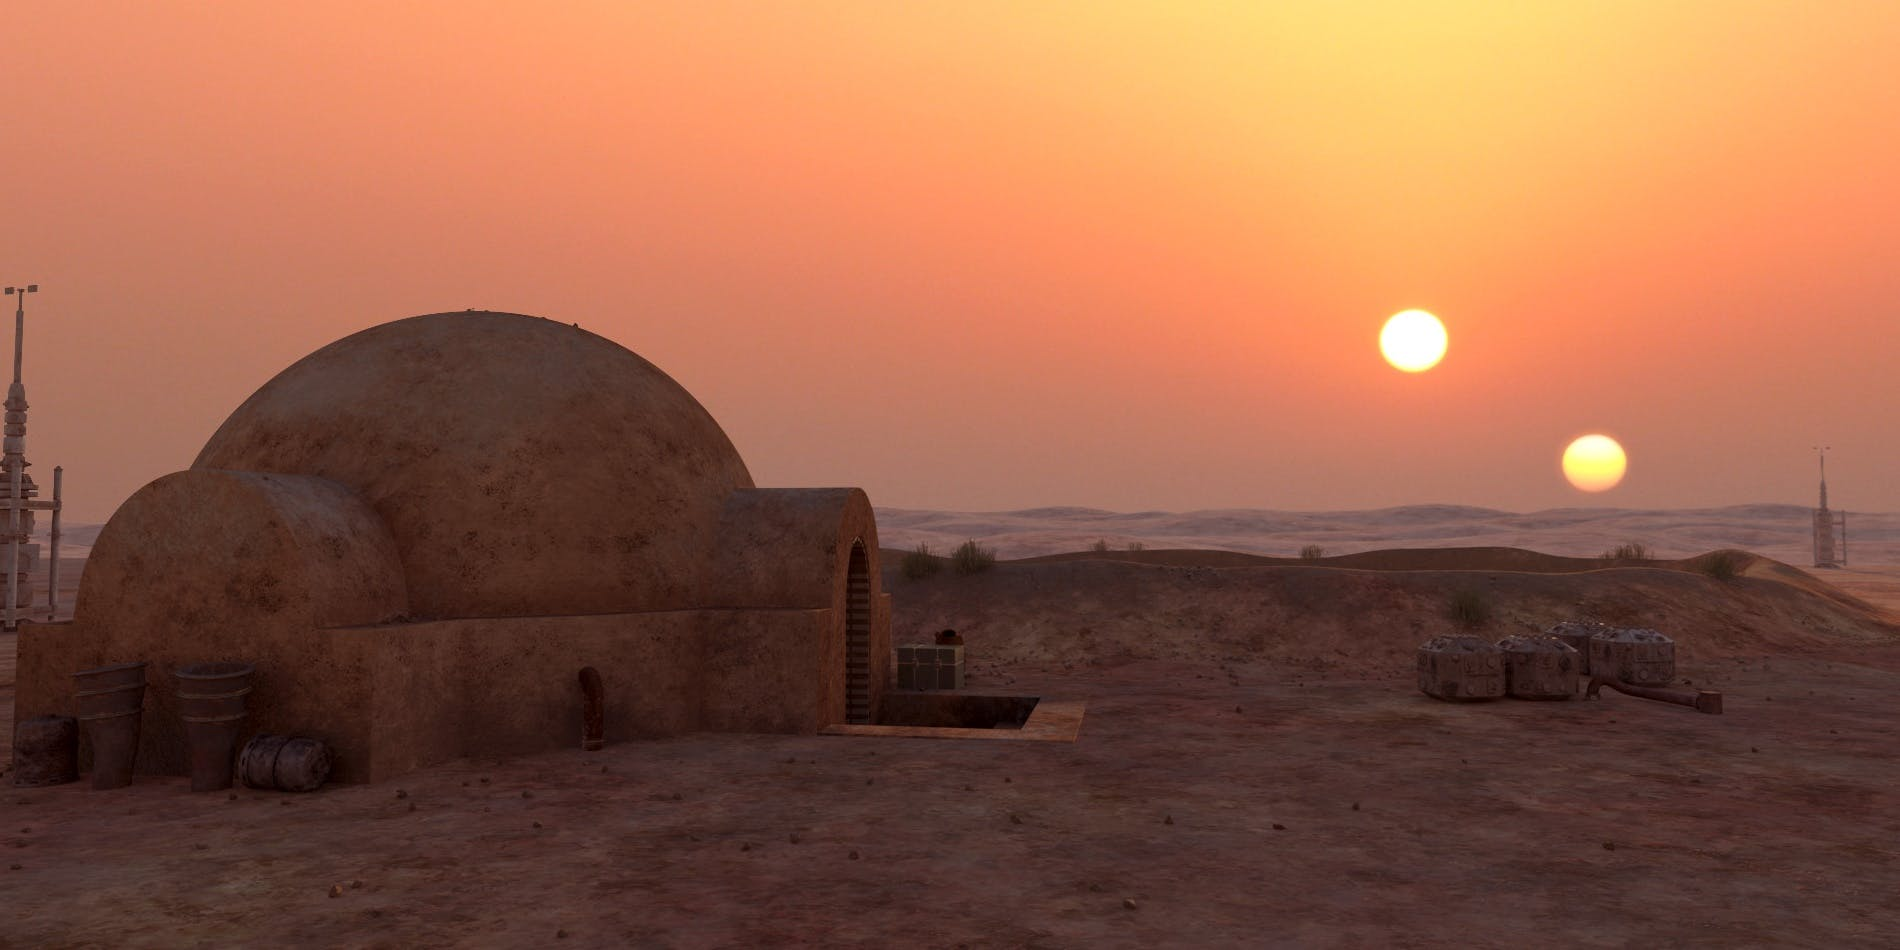 Star Wars Tatooine Wallpaper Posted By Sarah Anderson